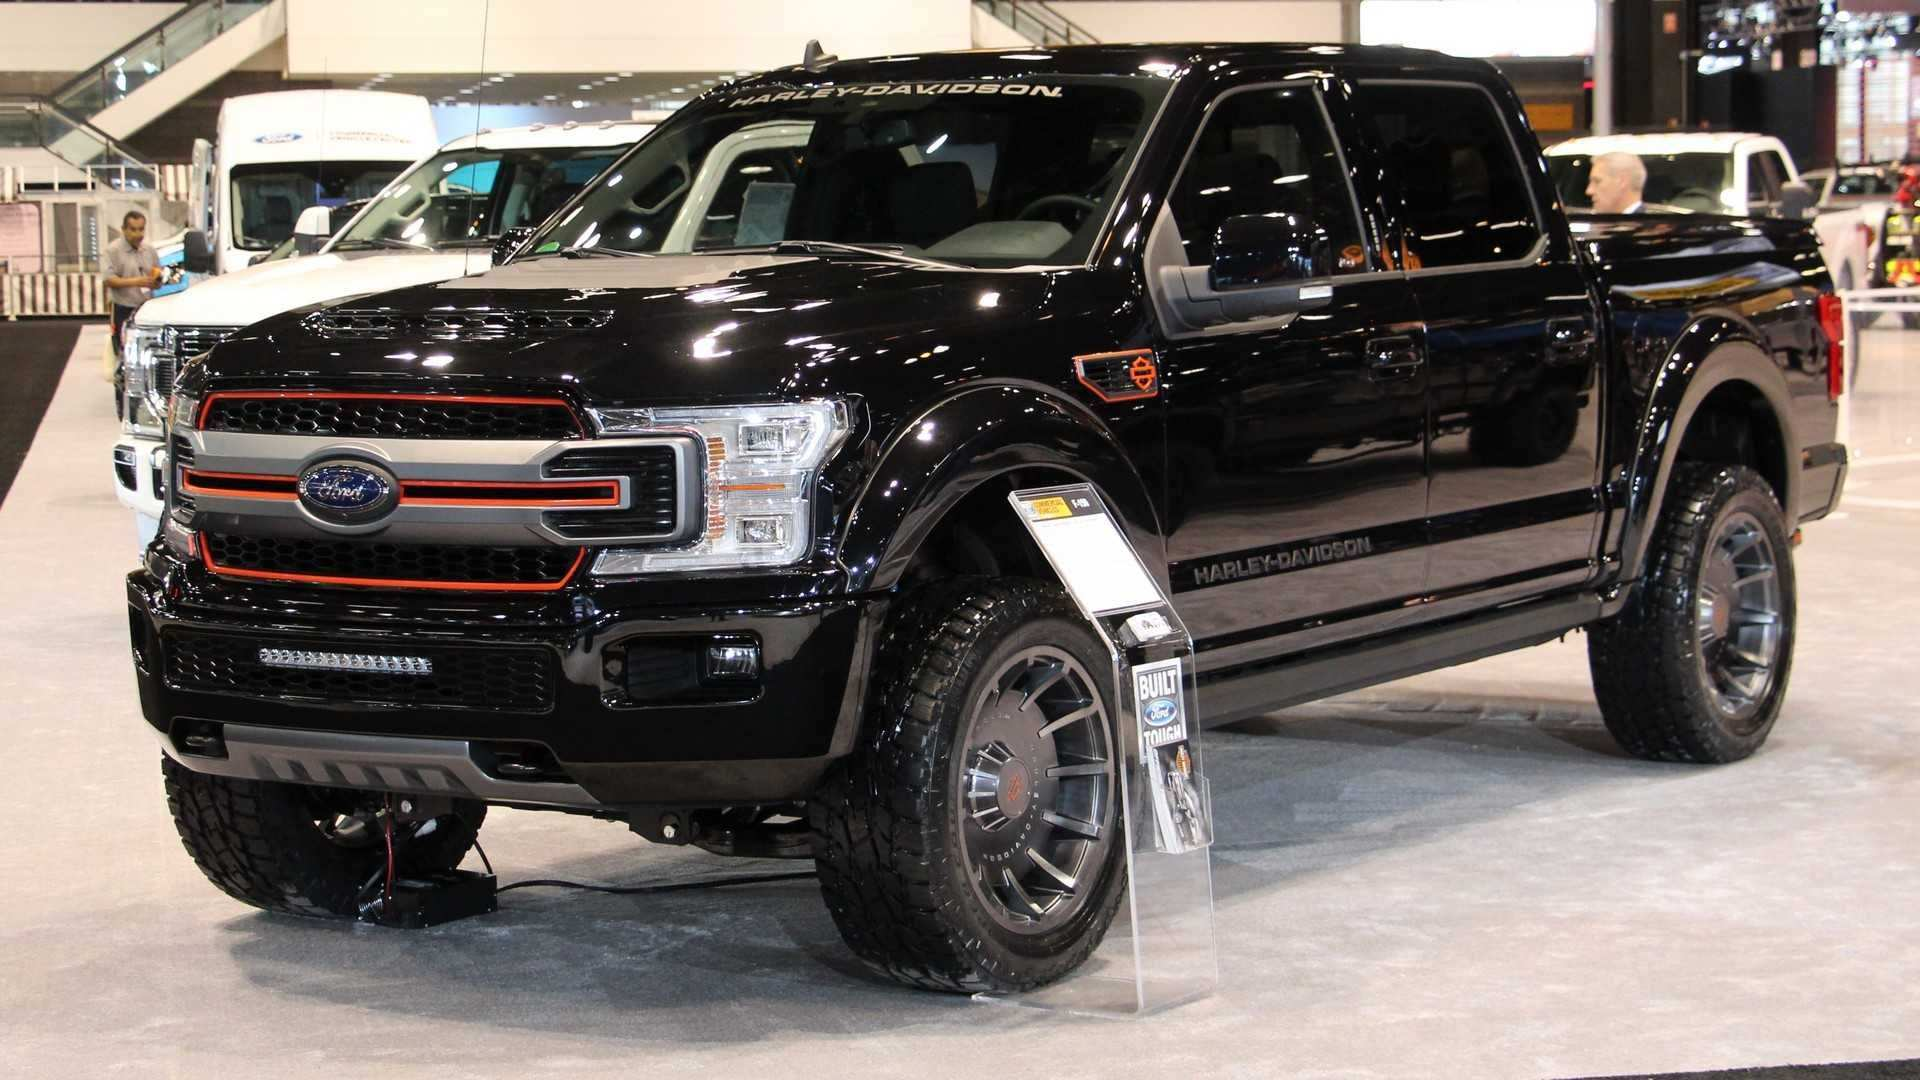 62 All New Ford Trucks 2020 Images